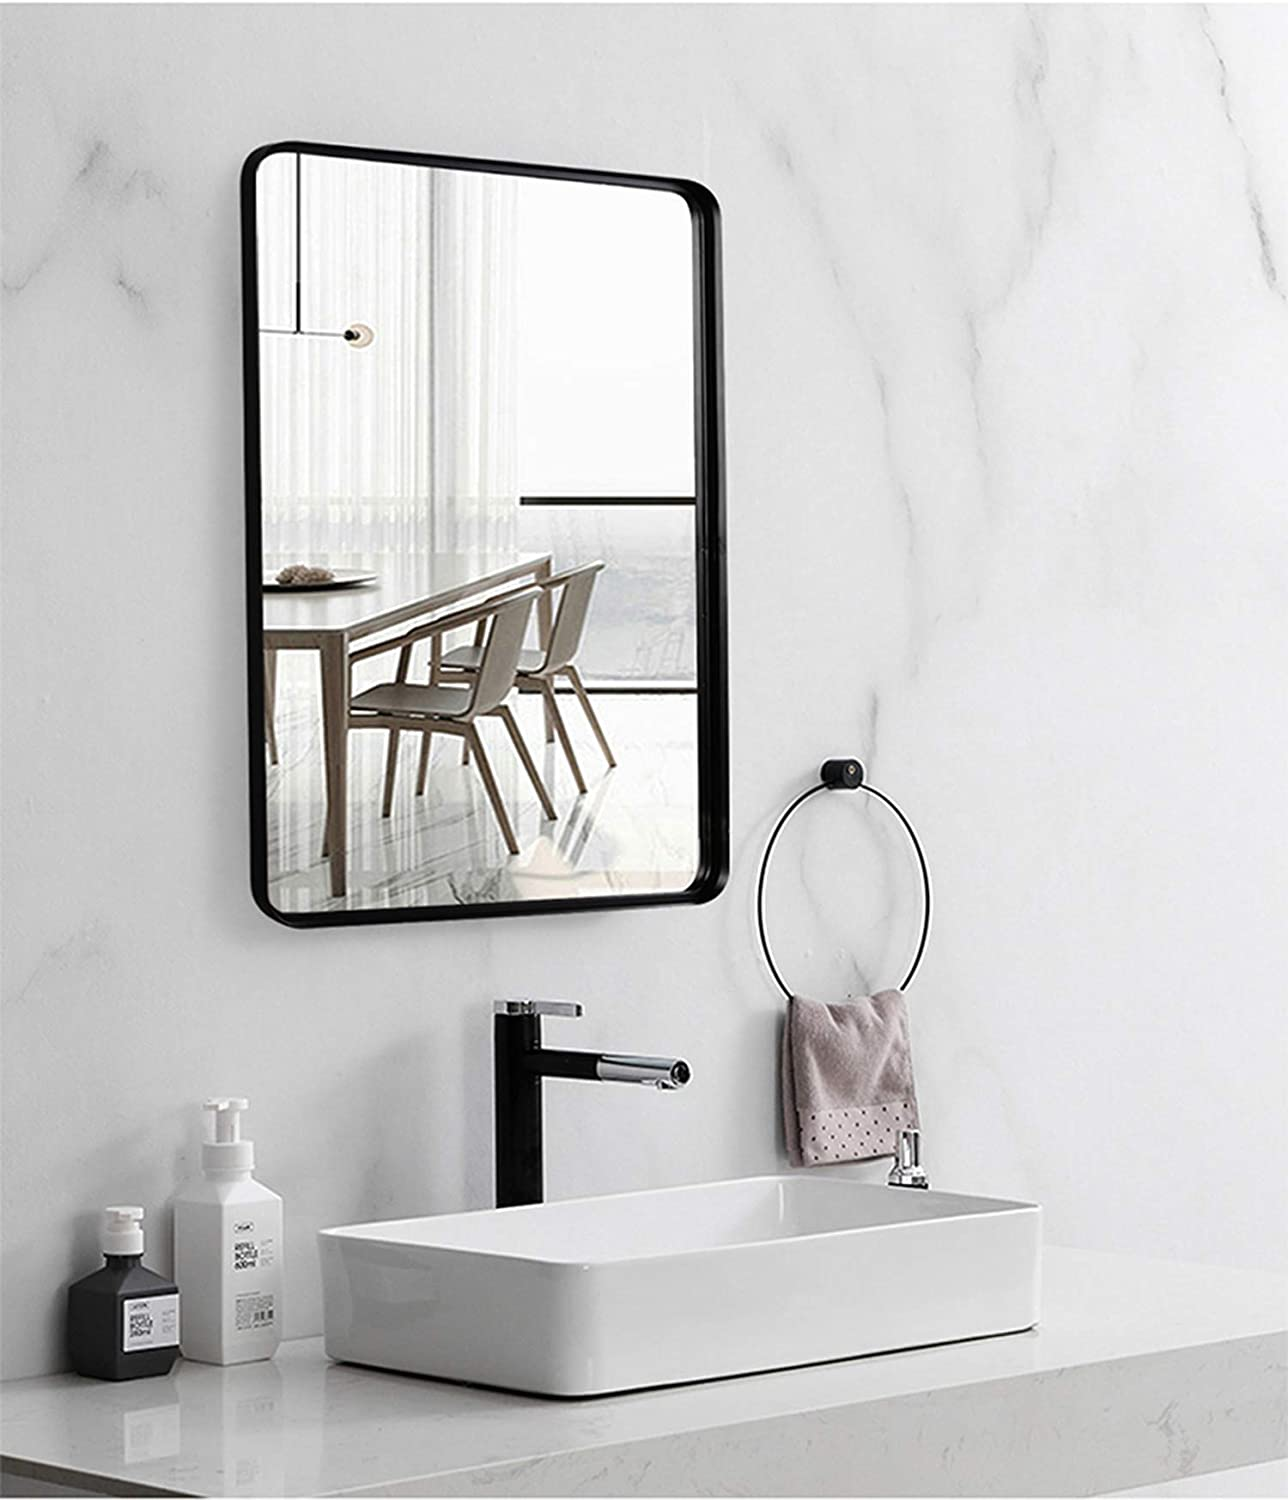 Buy Black Wall Framed Rectangular Mirrors For Bathrooms 22x30 Large Rectangle Mirror With Brushed Glass Panel Modern Home Entryway Decor Mirror With Corner Deep Design Hangs Horizontal Or Vertical Online In Poland